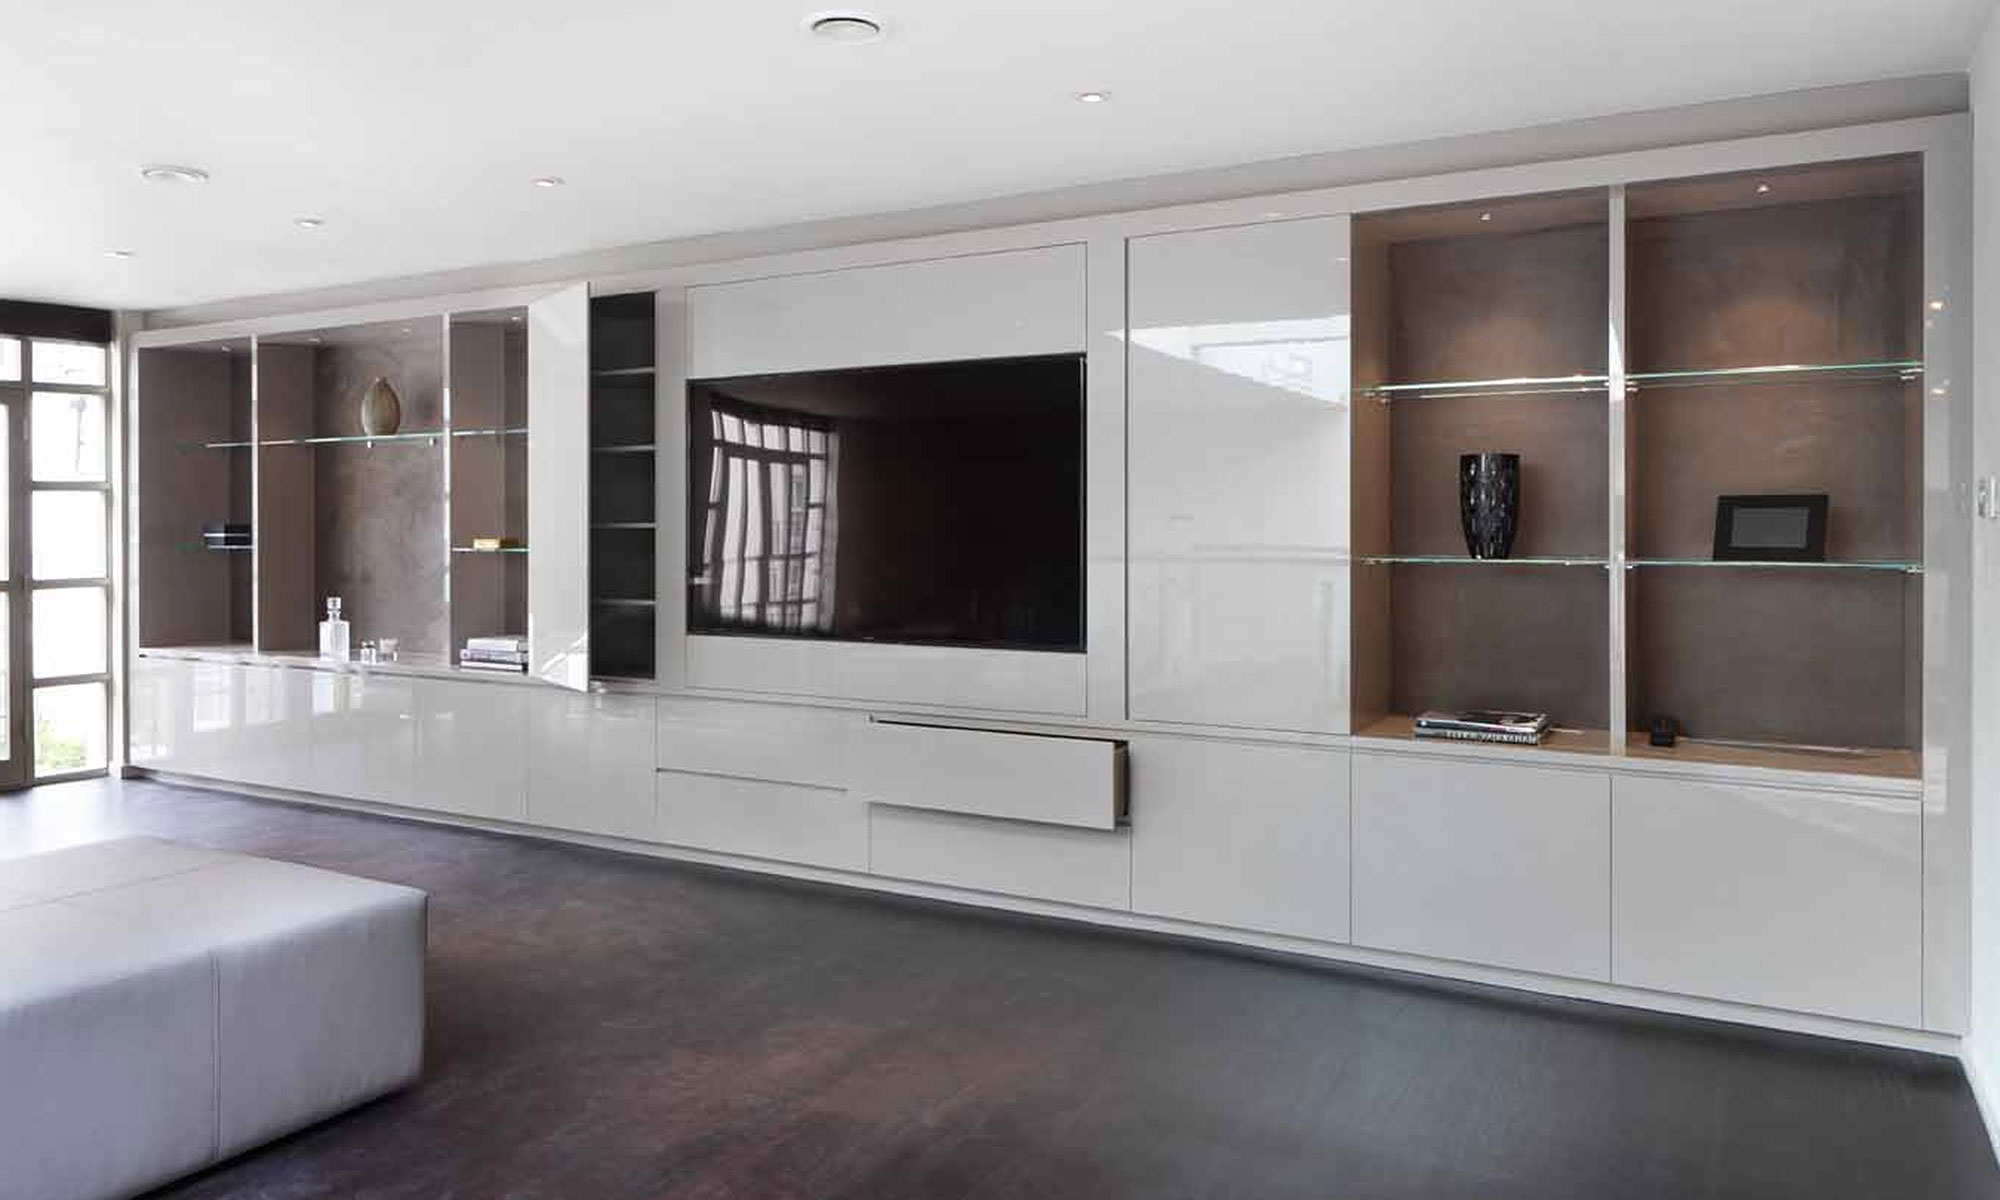 Bespoke Wardrobes – Bedroom Design – Lichfield & Tamworth – Mccaniels Intended For Trendy Bespoke Built In Furniture (View 5 of 15)